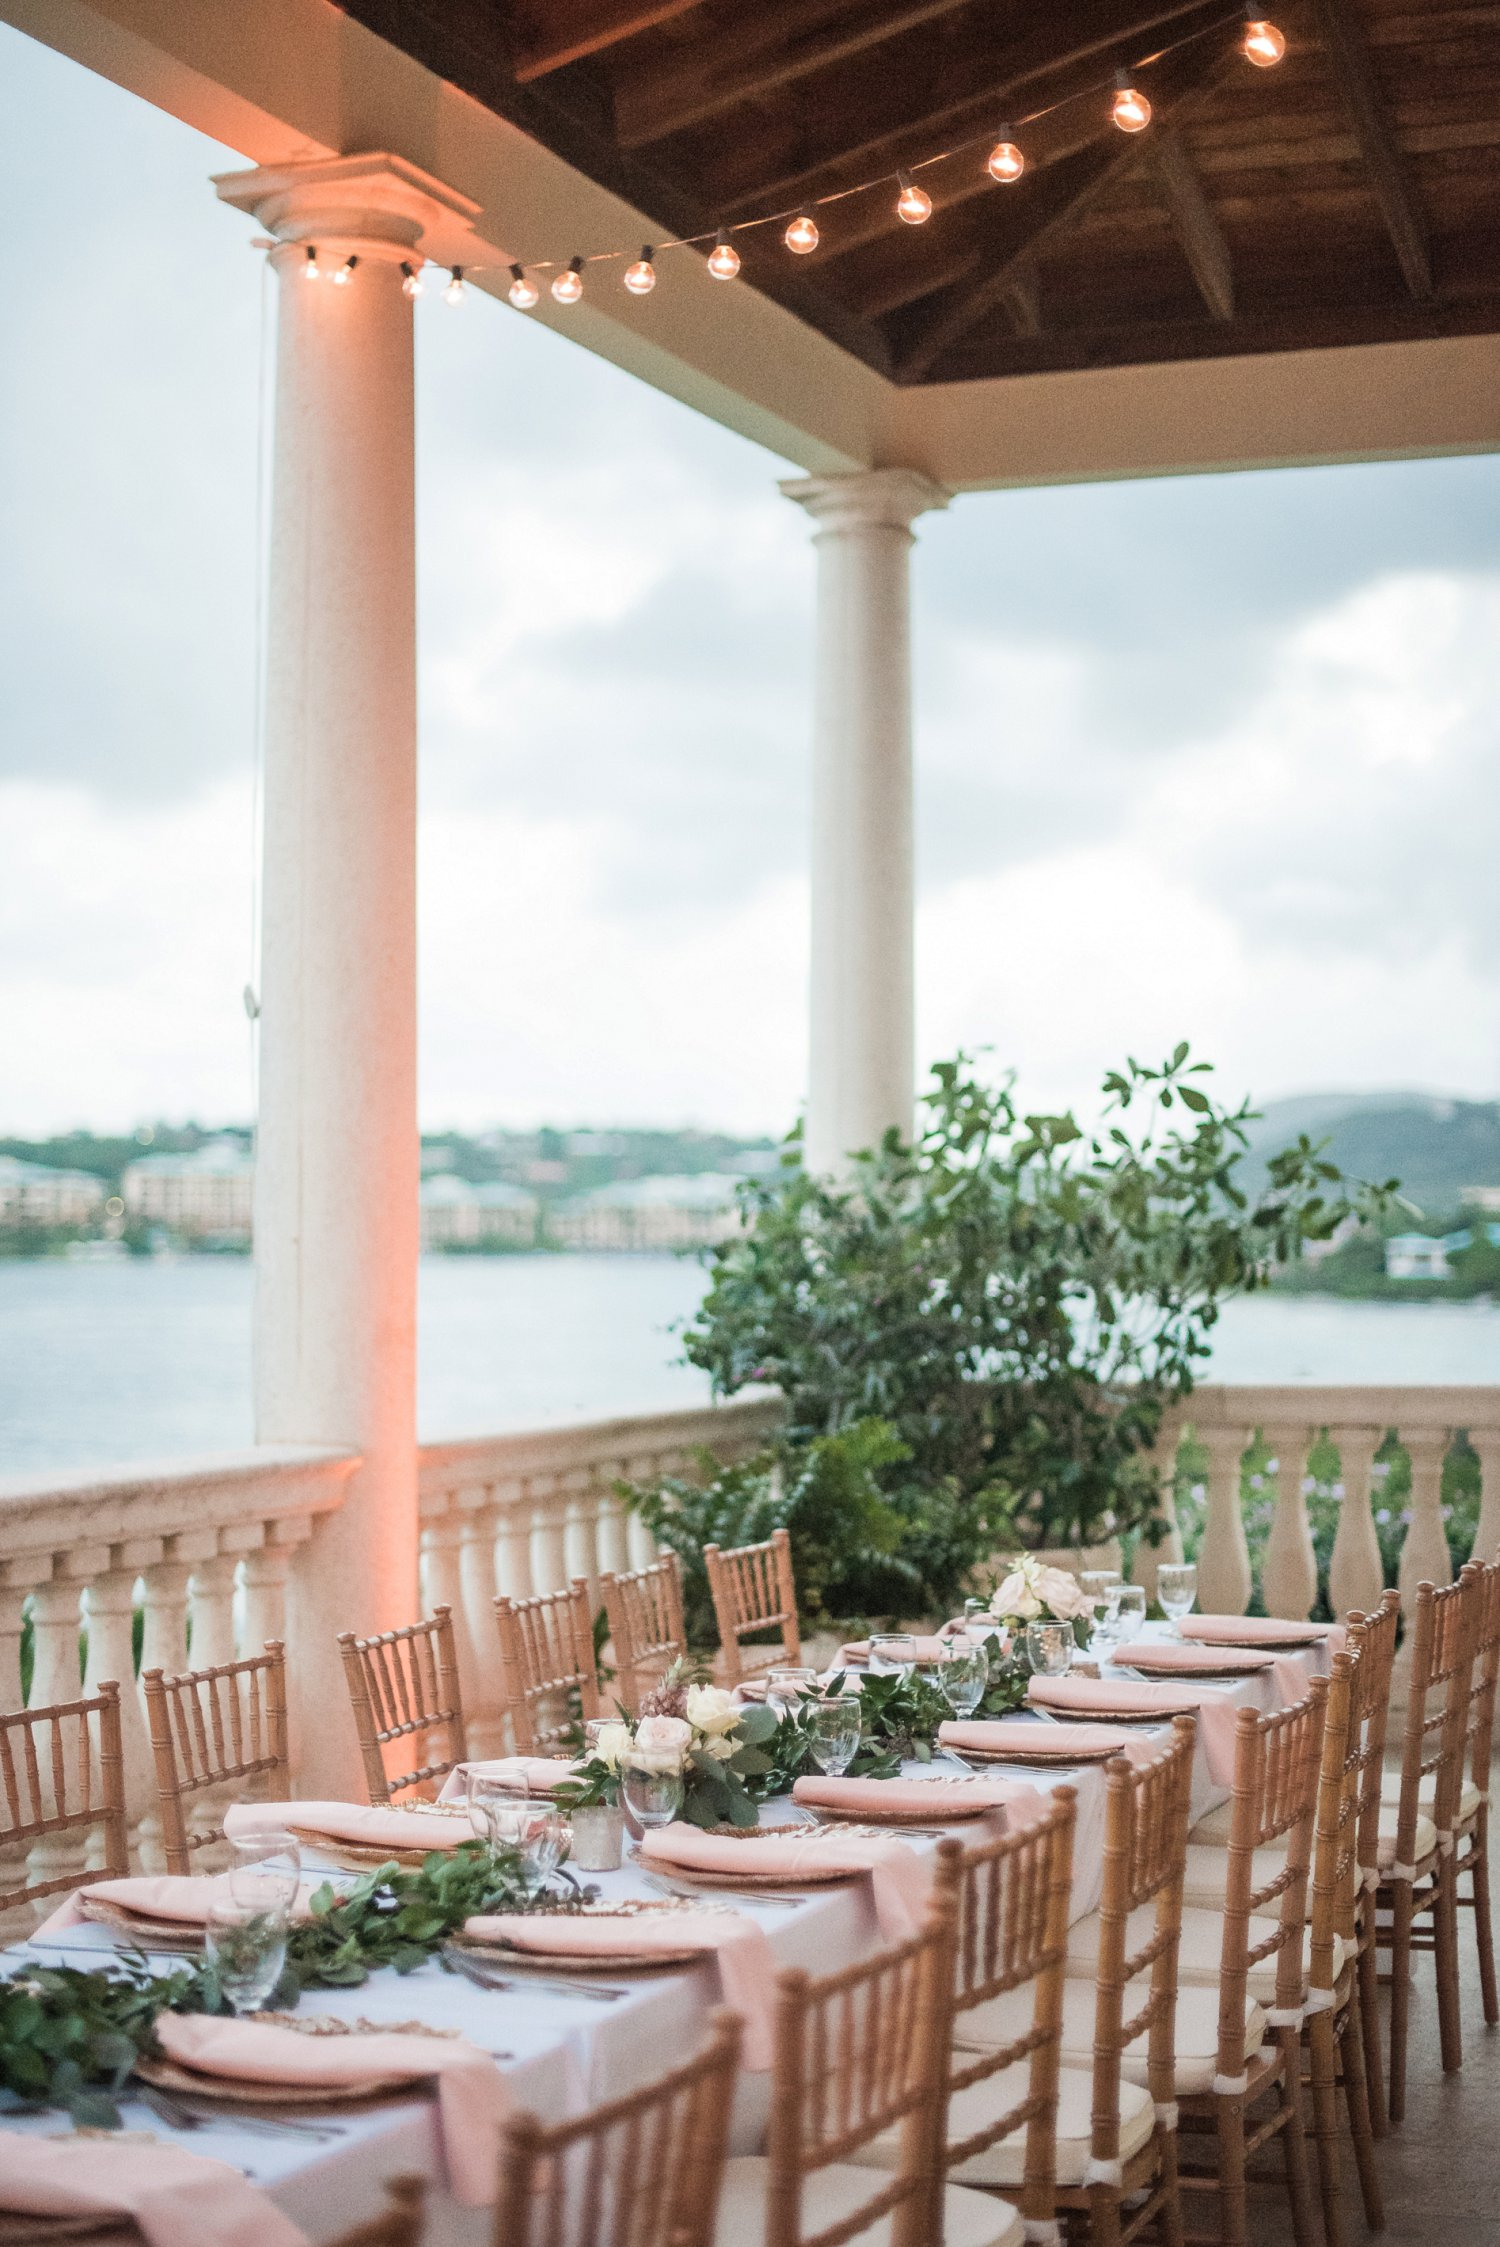 Wedding reception with blush napkins and gold chargers at Villa Serenita, St. Thomas, USVI